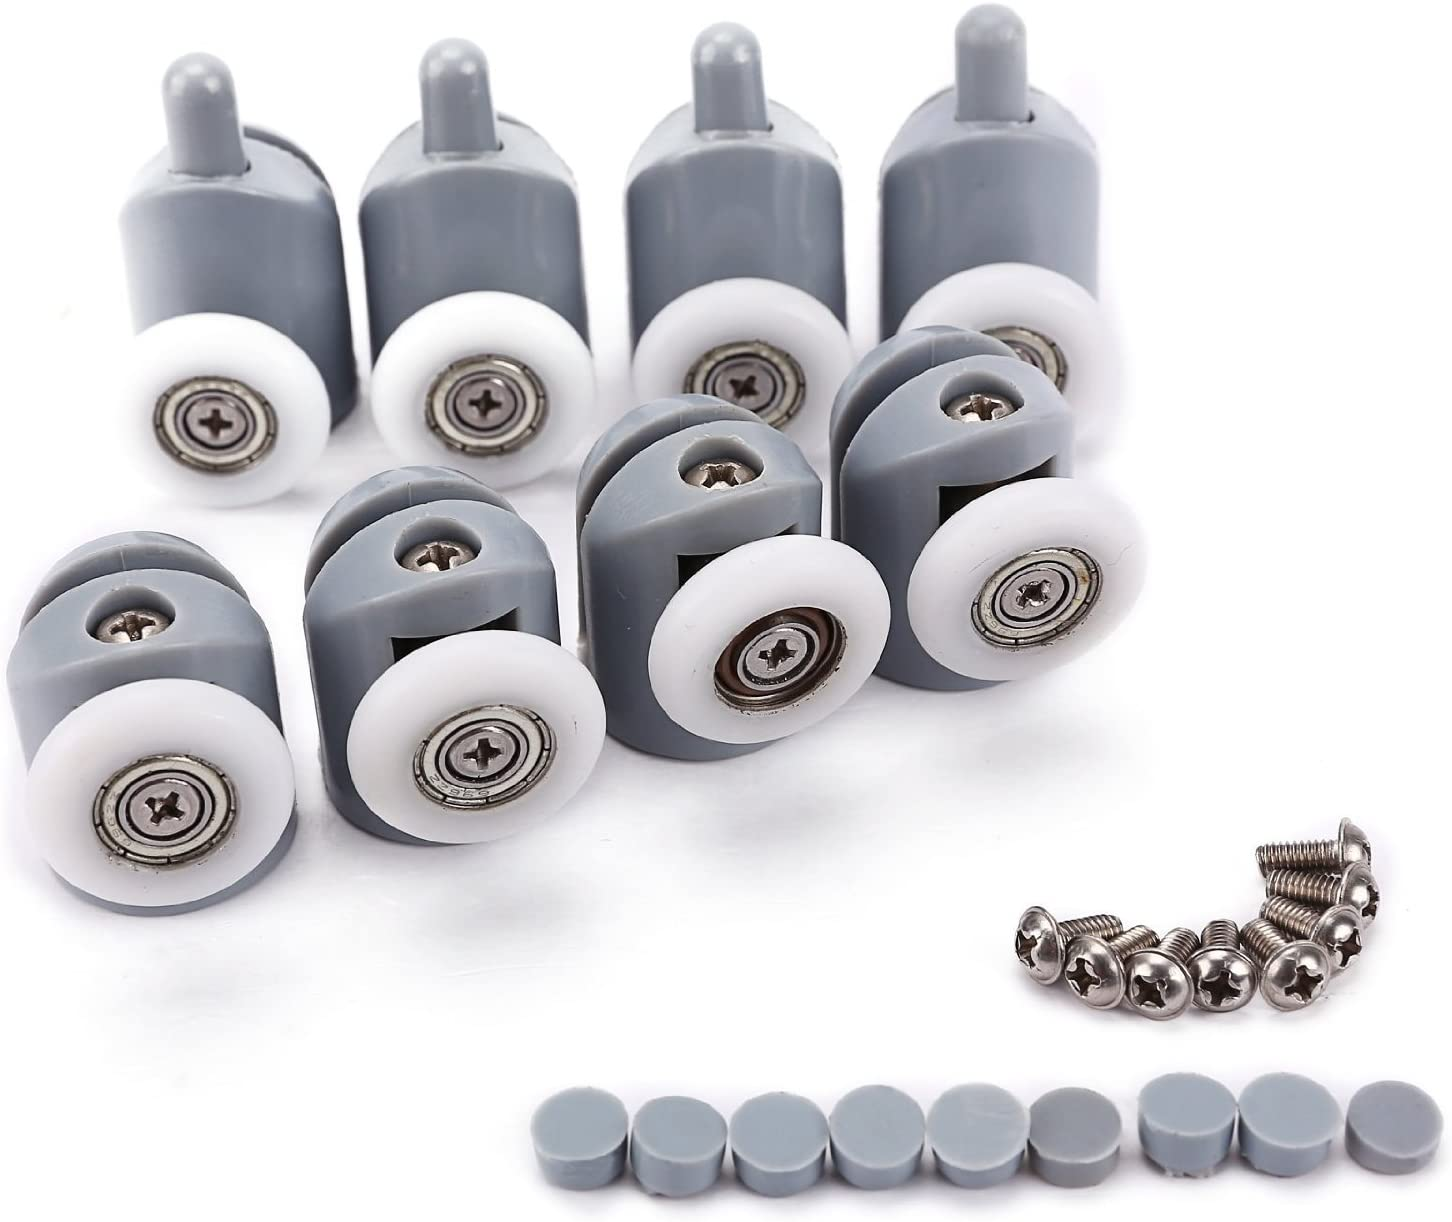 Shower Door Rollers, Lance Set of 8 Single Shower Door Runners/Wheels / Pulleys/Guides 23mm Diameter Home Bathroom DIY Replacement Parts(4 upper rollers and 4 bottom rollers) by Lance